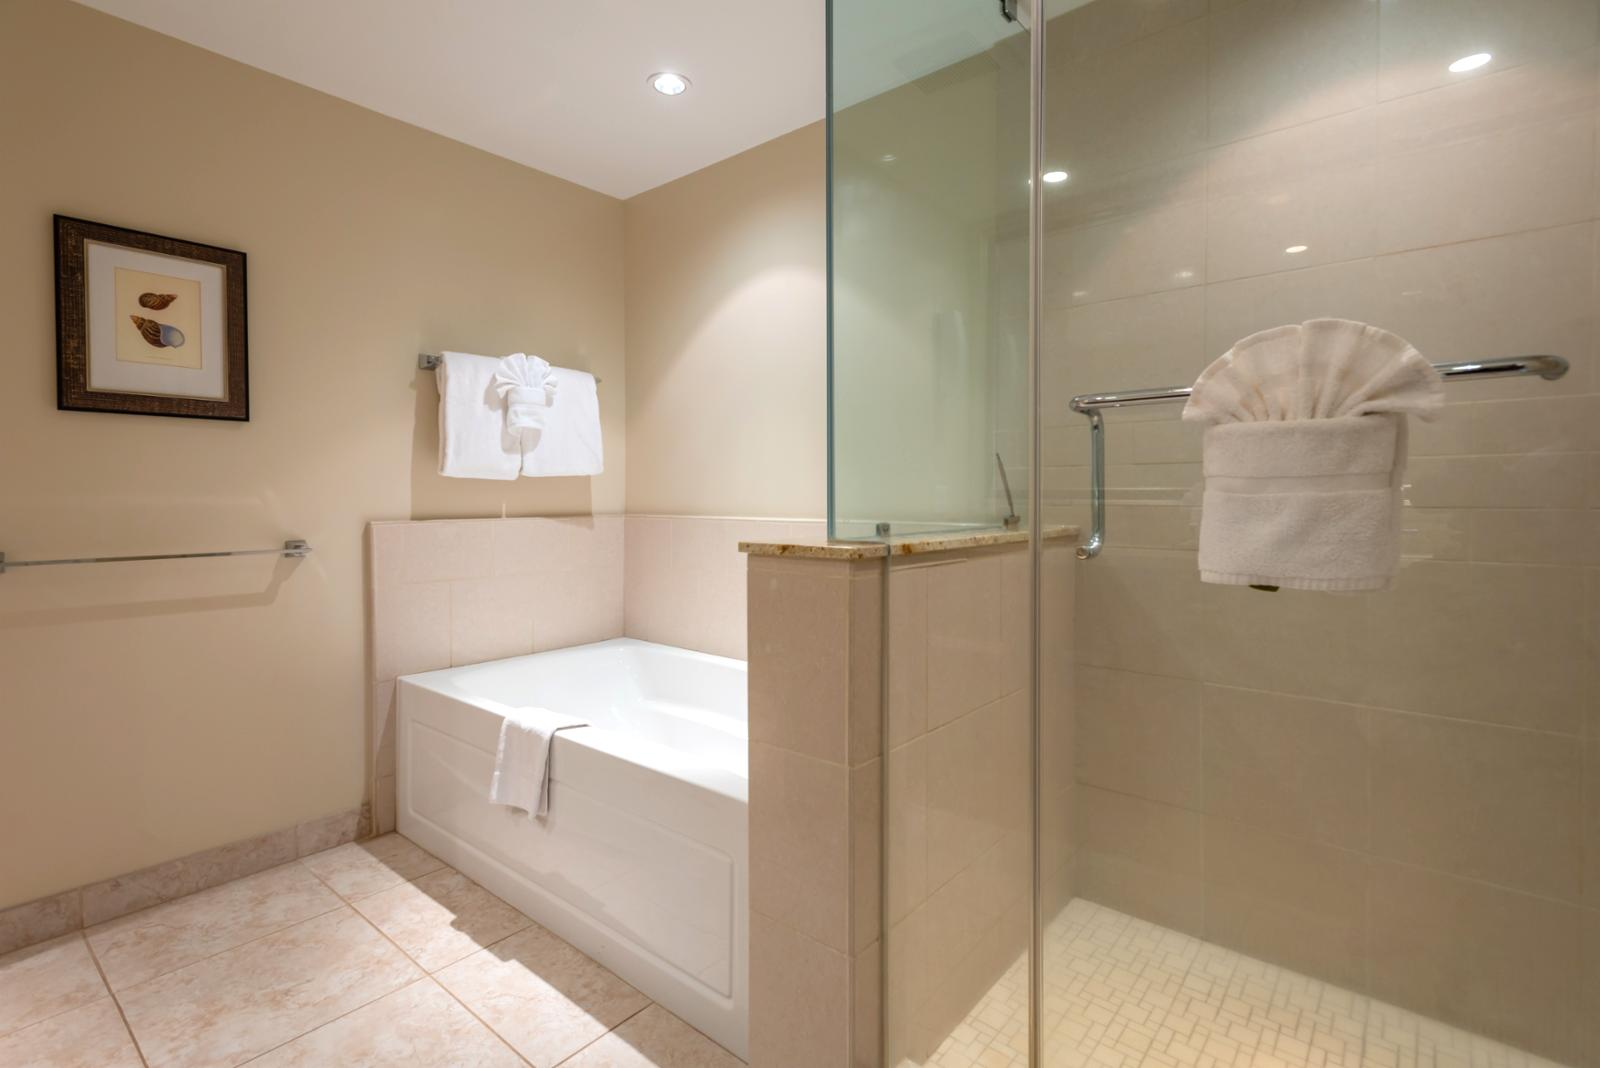 Shower and tub combination - perfect for families!